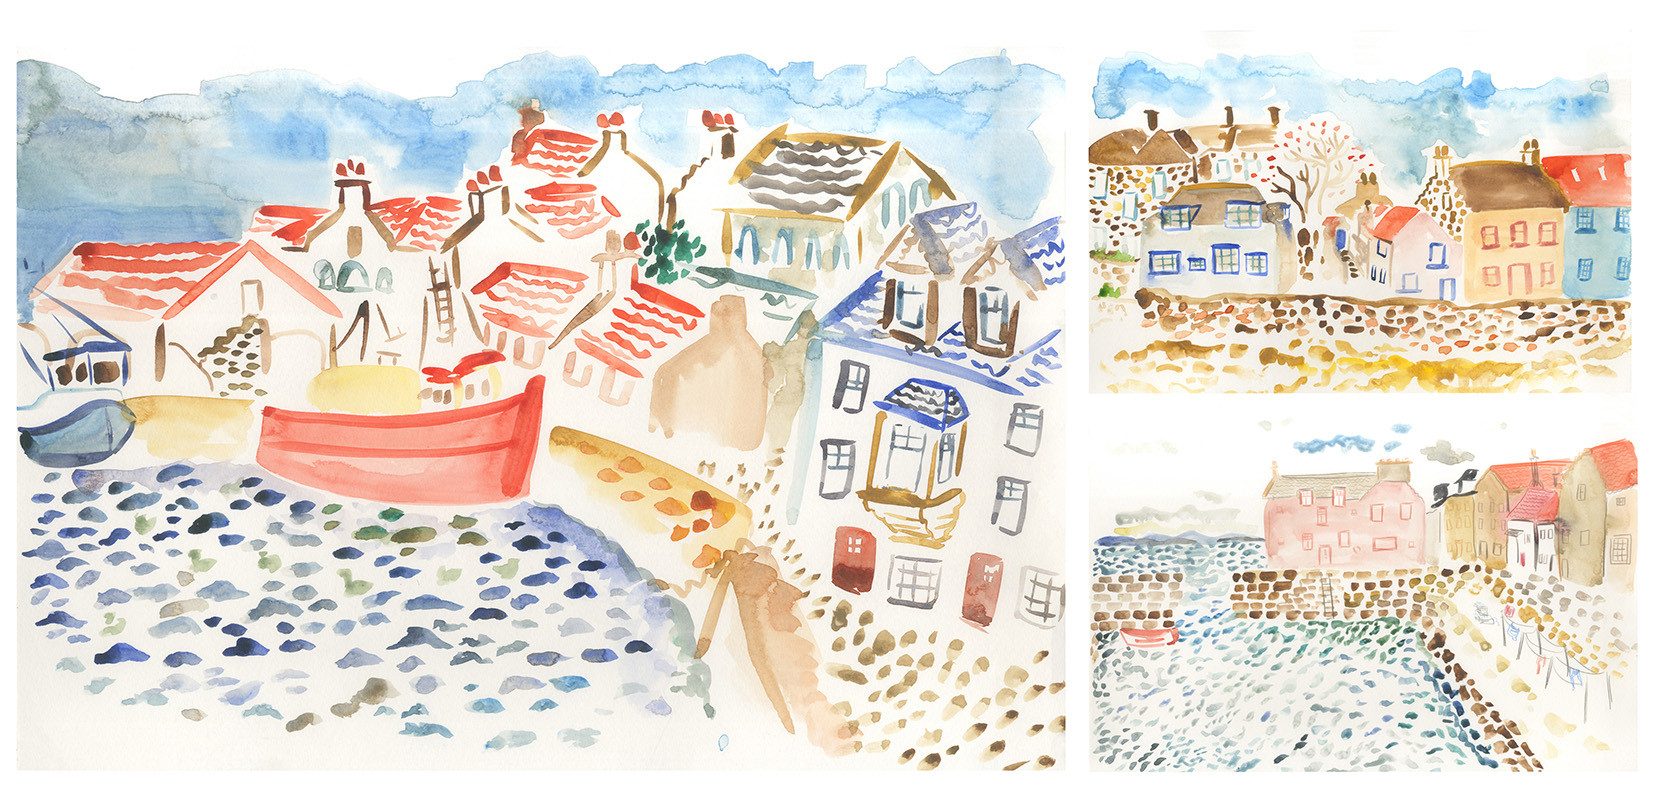 Observational paintings from Anstruther, Scotland